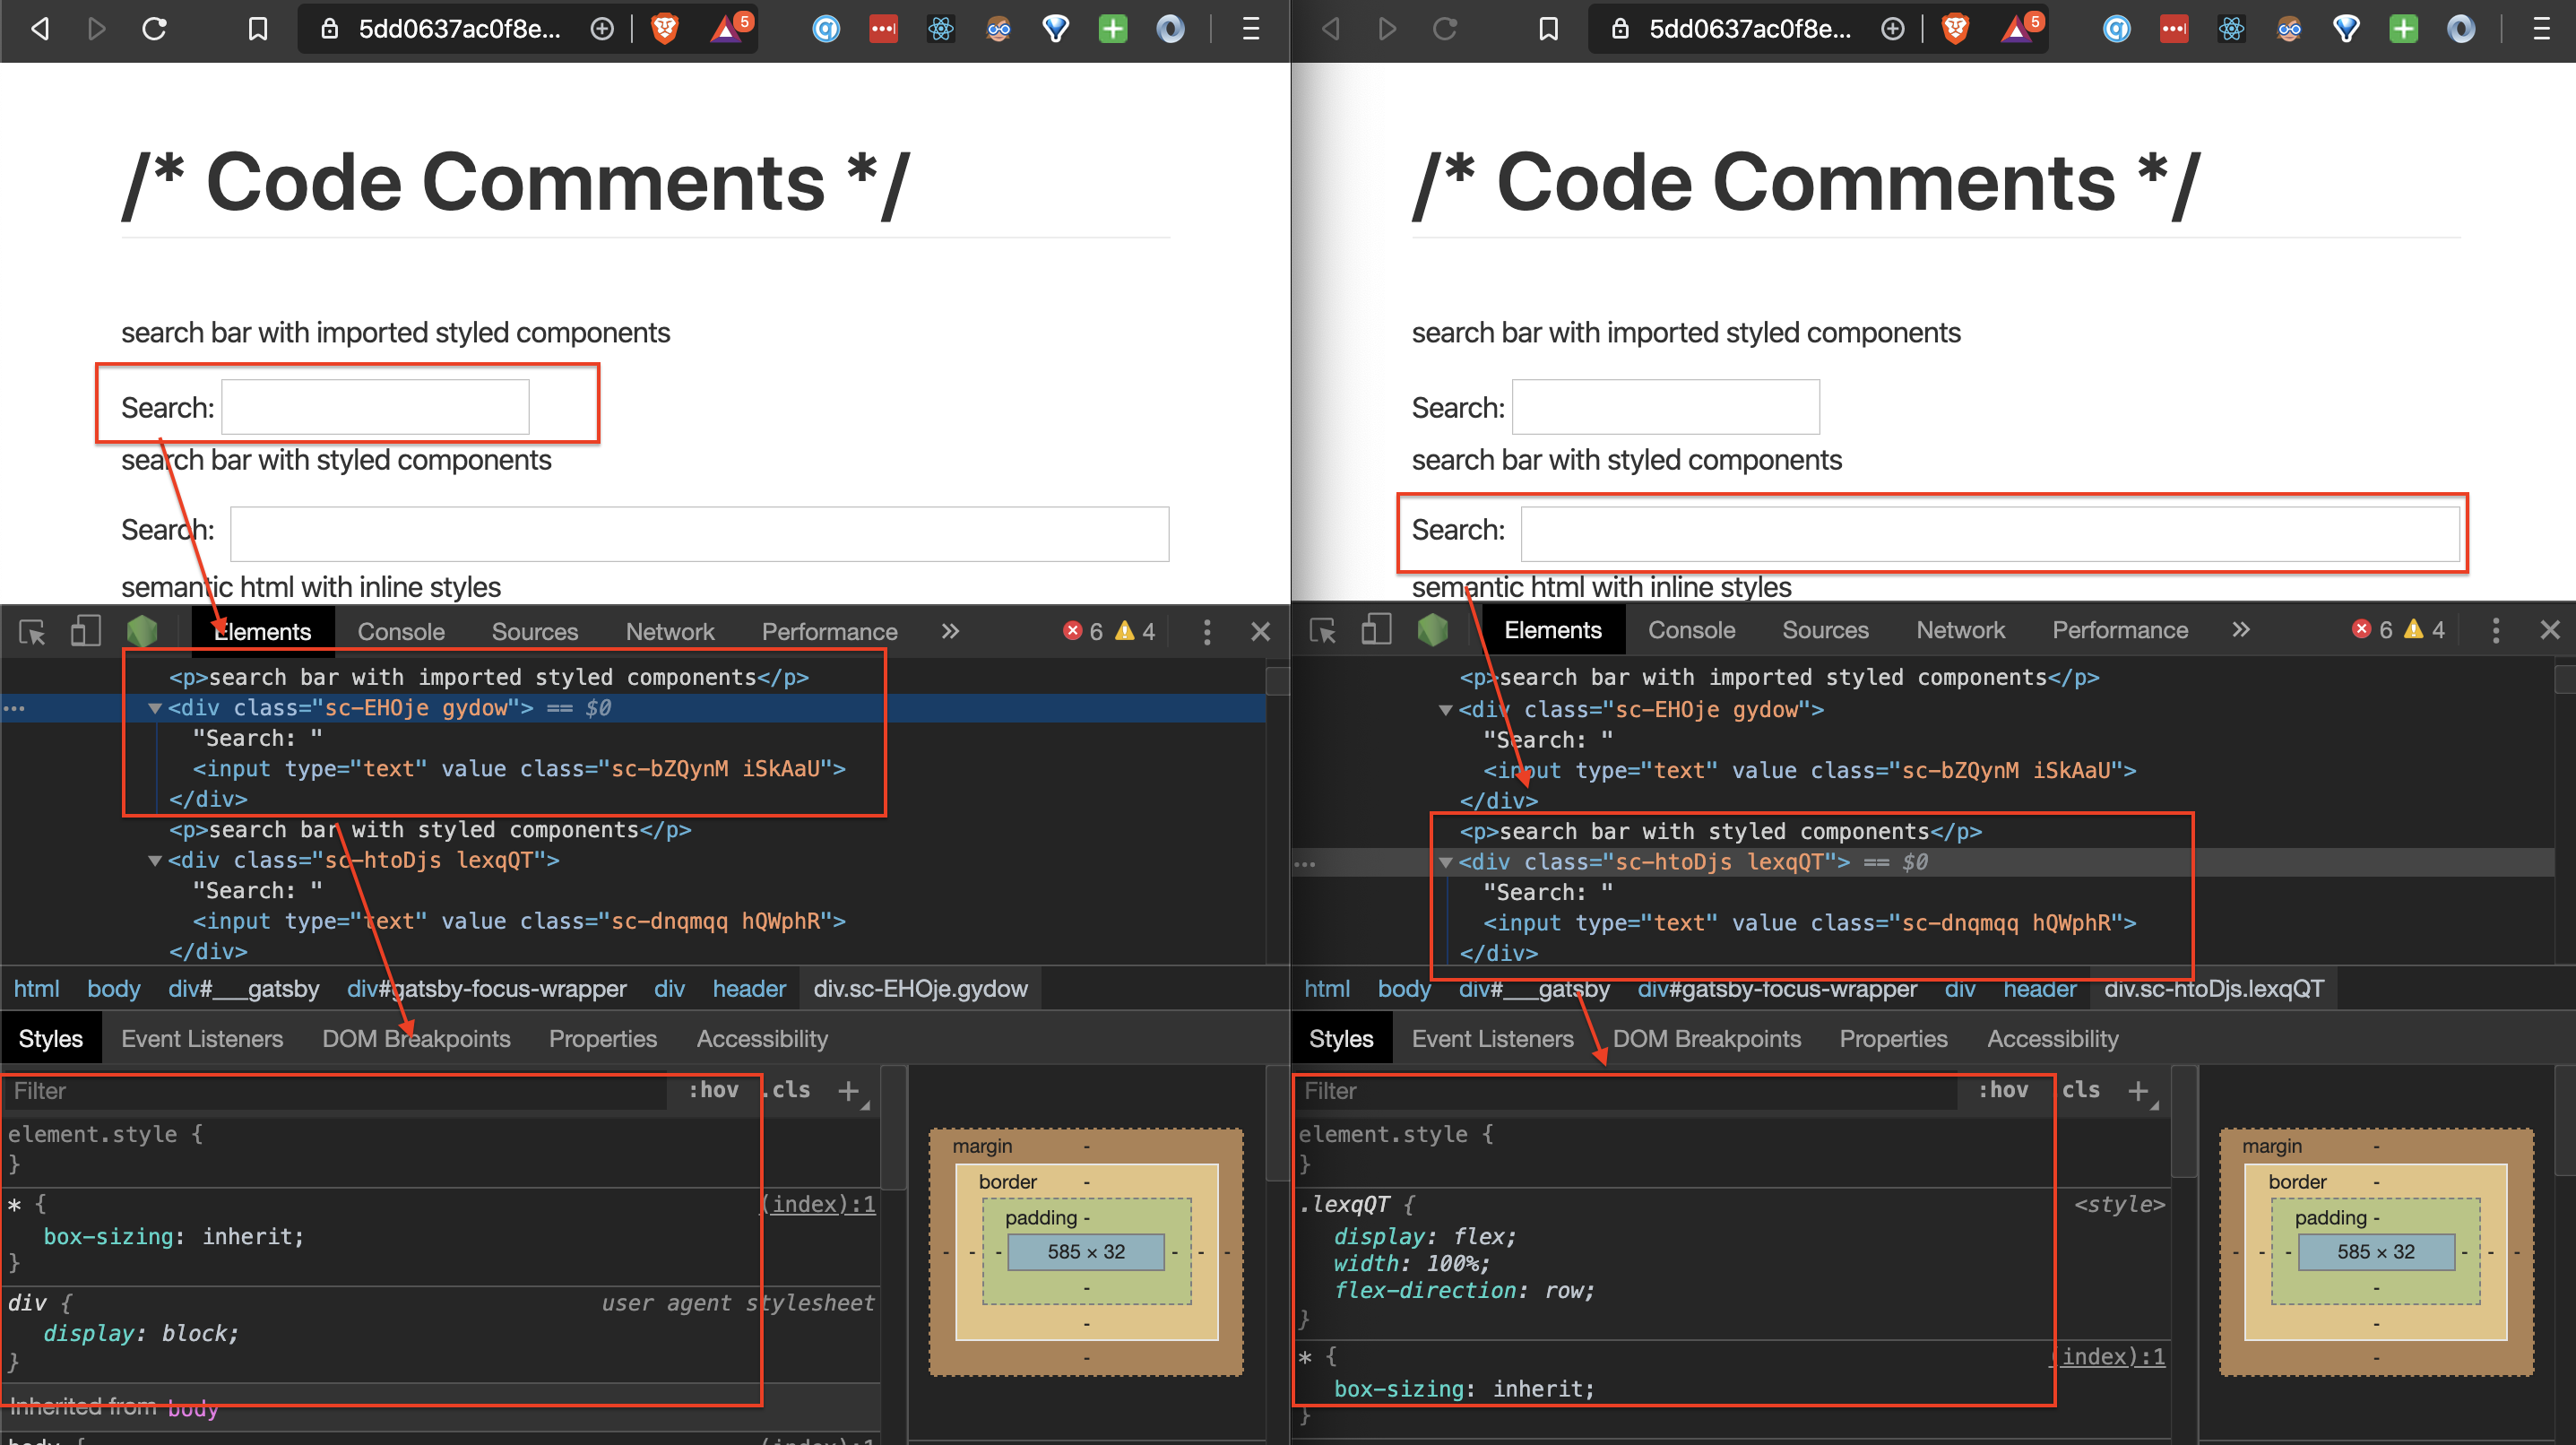 A side-by-side view of styled components